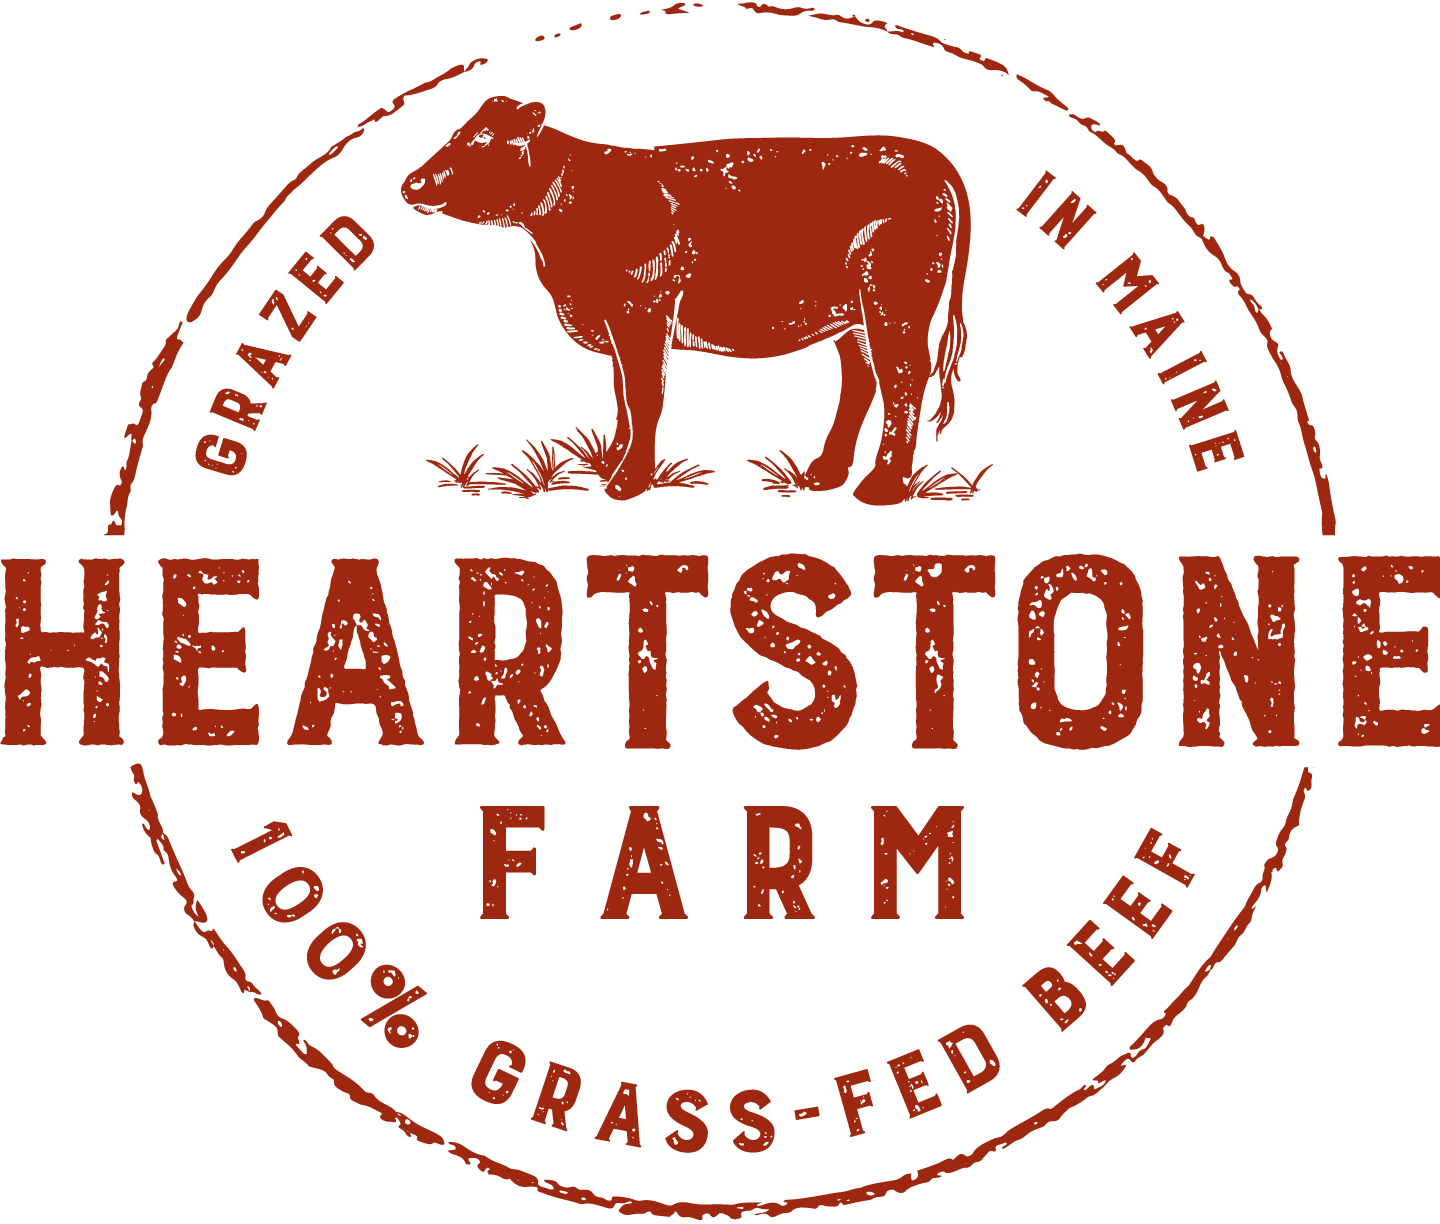 Heartstone Farm